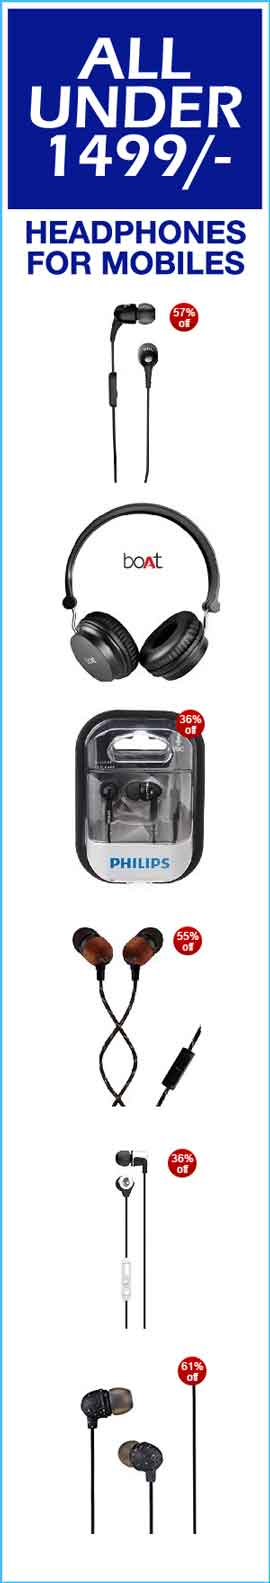 amazon-headphones-for-mobiles-under-1499-50-off-headphones-for-mobile-phones-best-price-cheapest-top-10-india